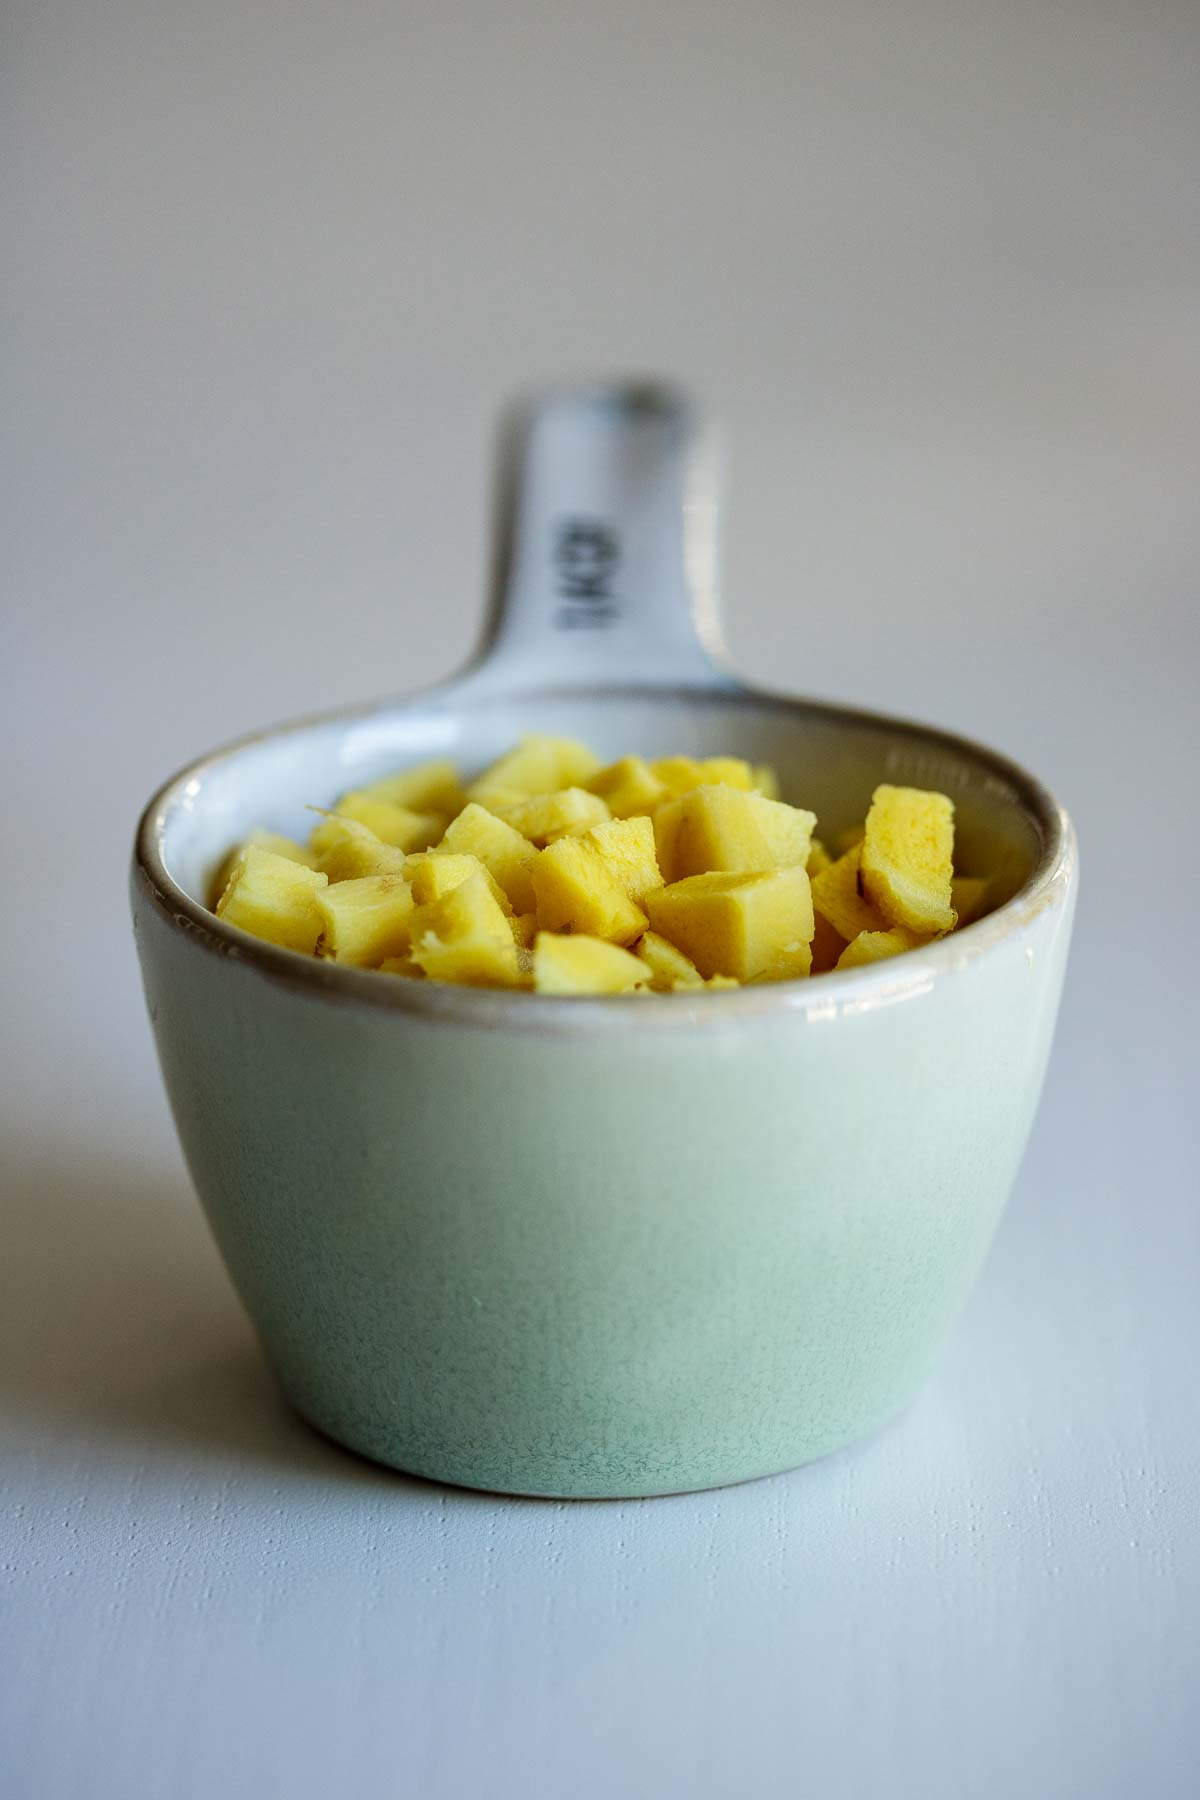 A quarter of a cup filled with cubed ginger.